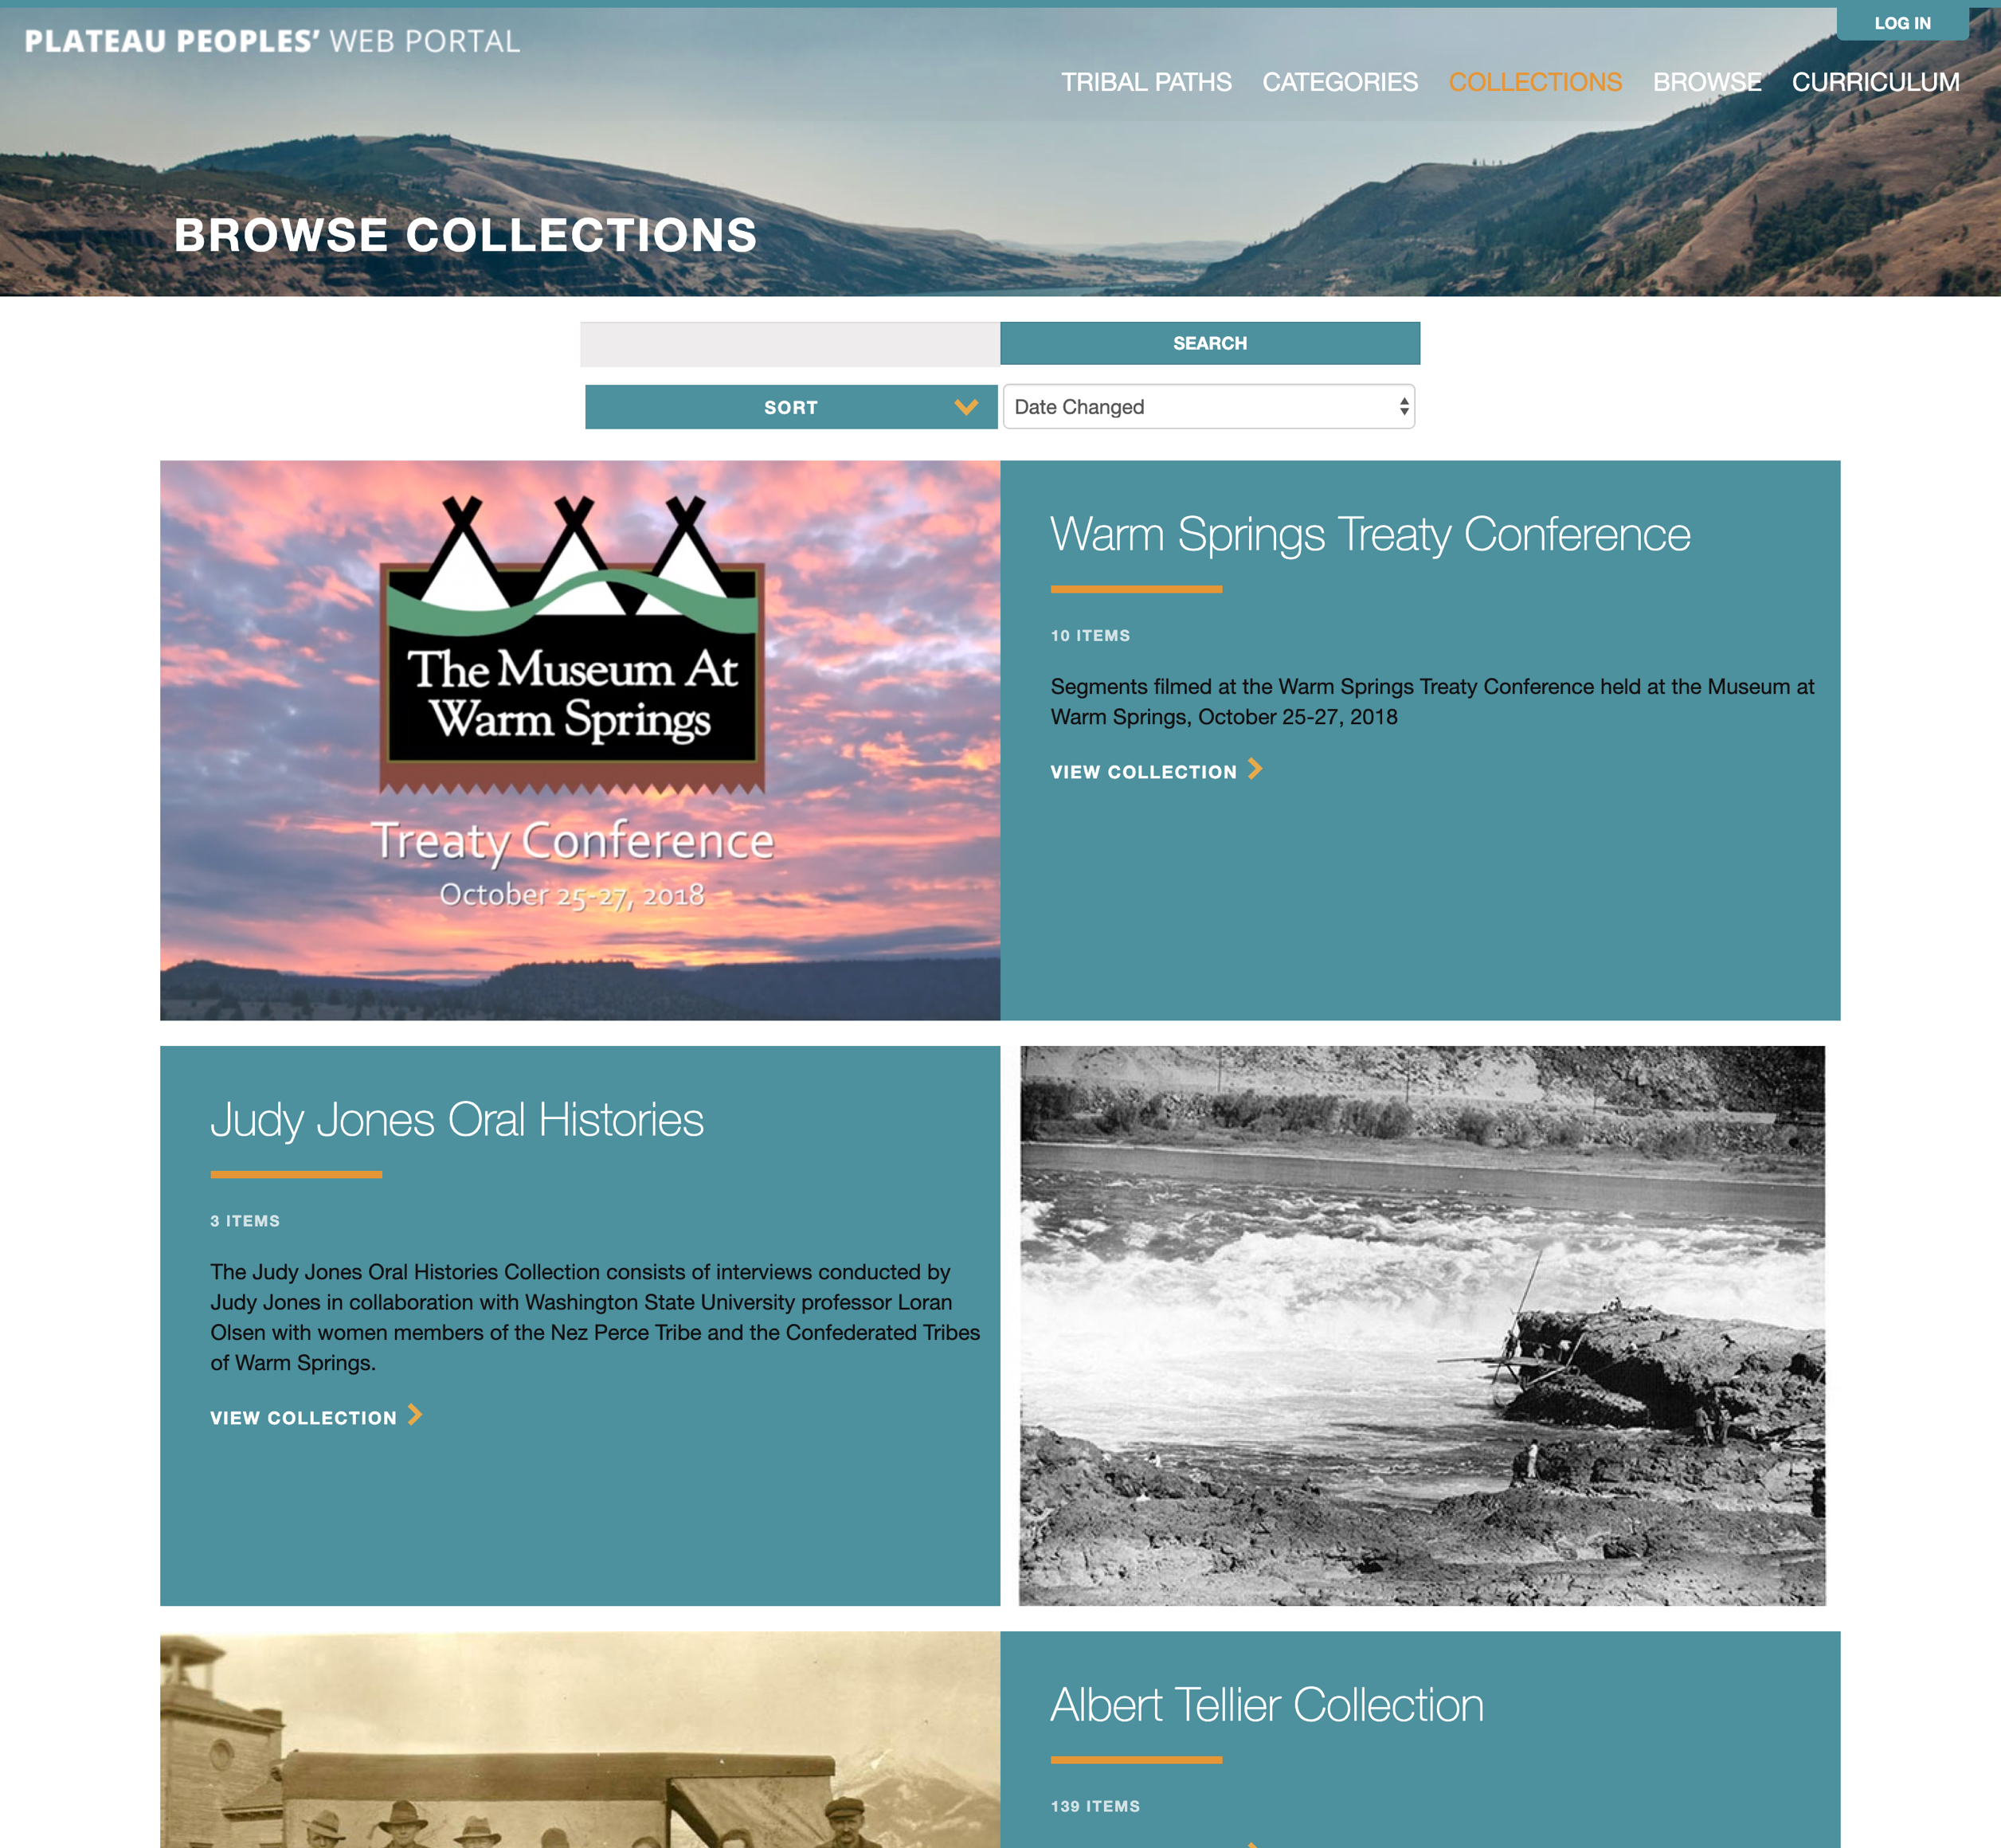 A screenshot of Plateau Peoples' collection page, a Mukutu website for Washington State University.